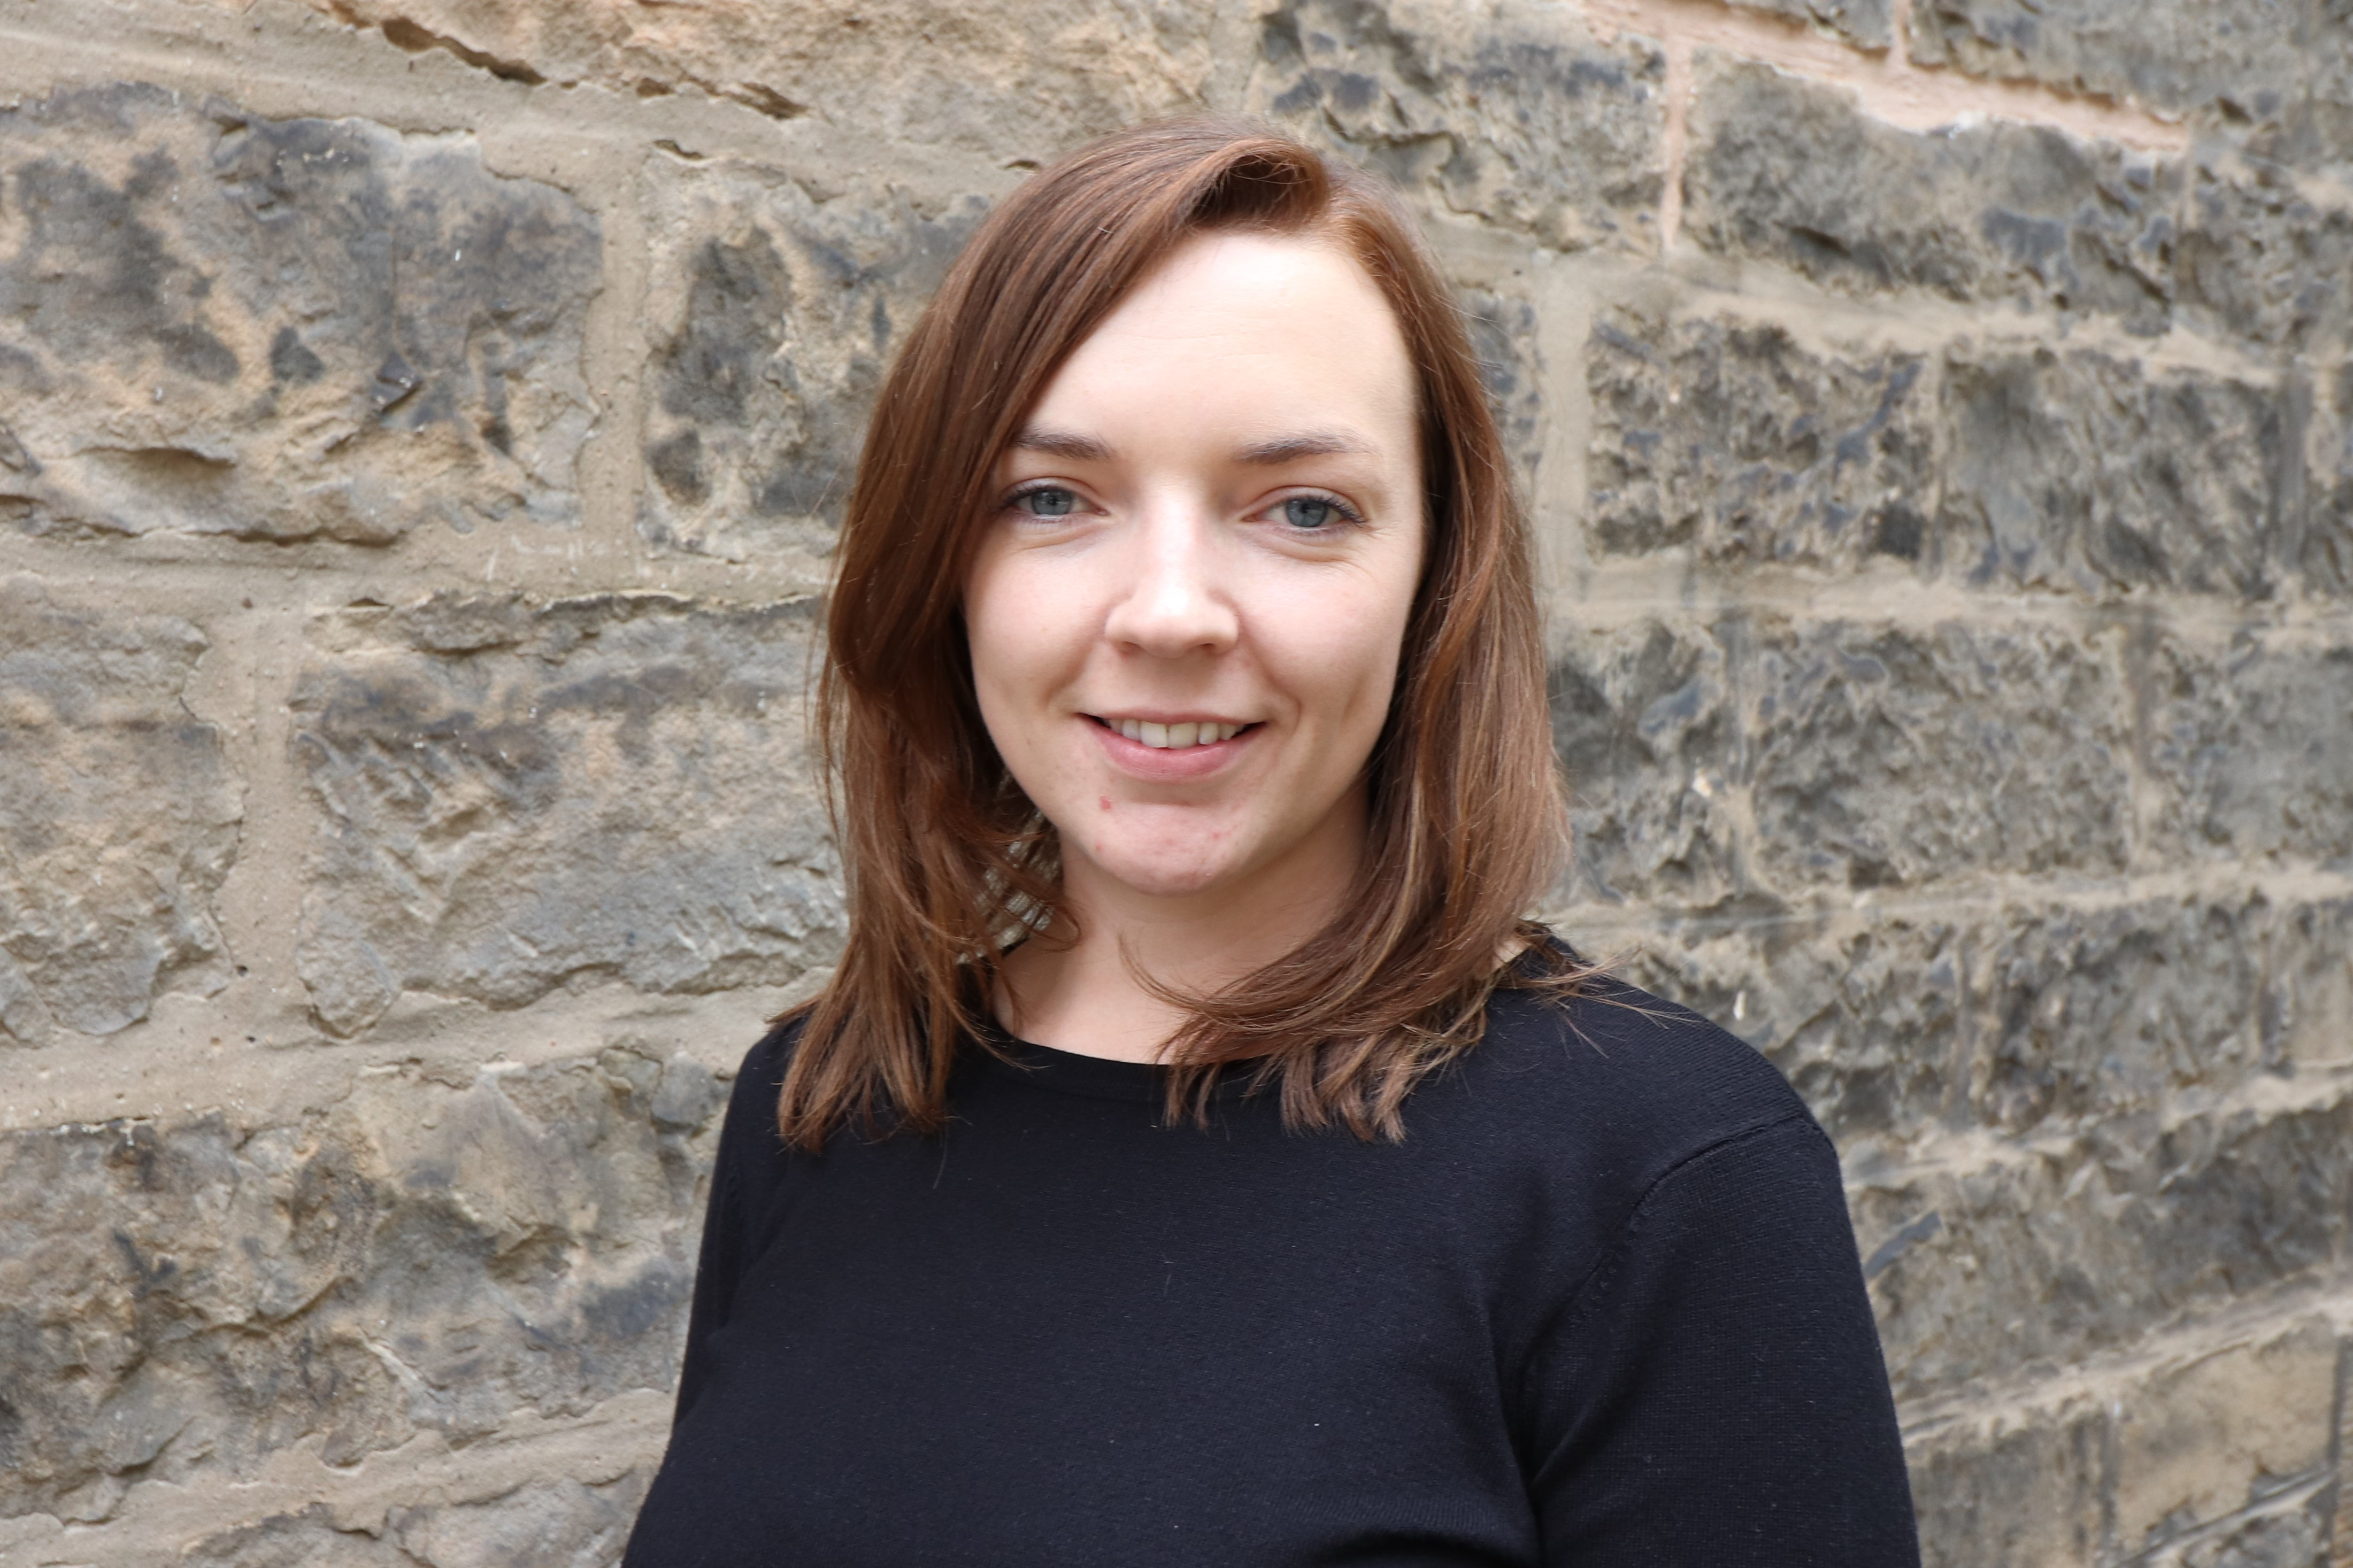 Cullen Property hires experienced Property Manager as part of team restructure to offer more personal service